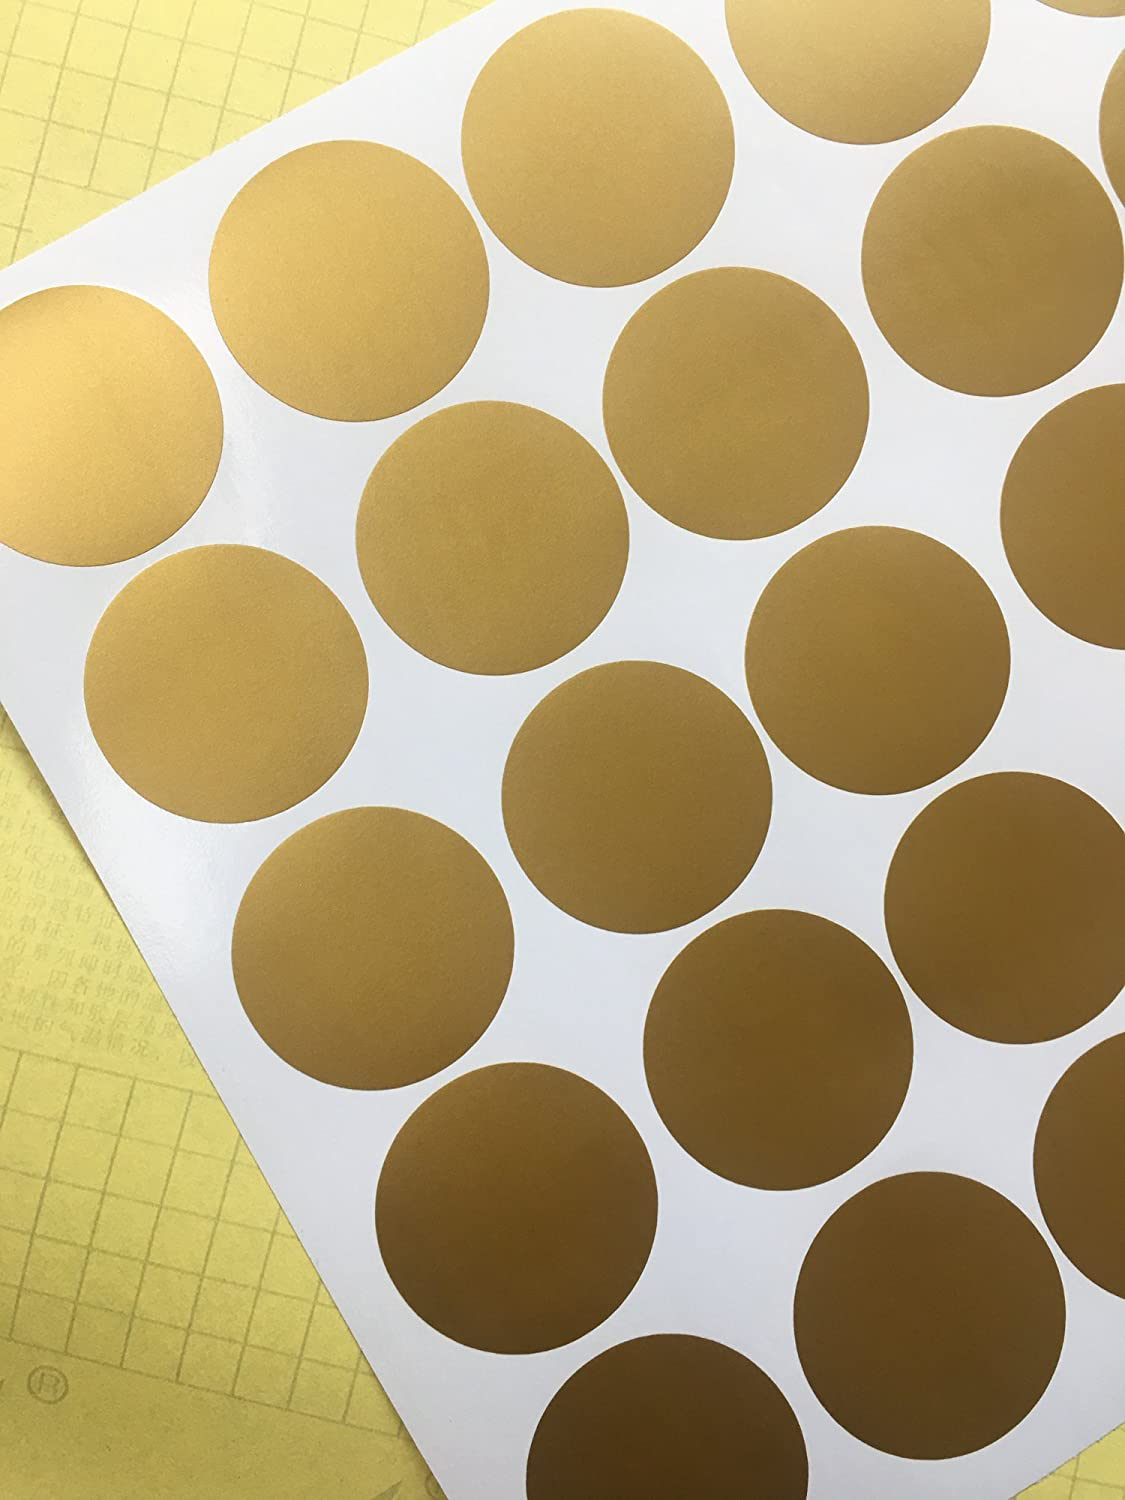 Gold Wall Decal Dots (200 Decals) Posh Dots Metallic Gold Circle Stickers Baby Nursery Kids Room Trendy Cute Fun Vinyl Removable Round Polka Dot Decals Safe for Wall Paint (Gold, 2.0inch x 200pcs)